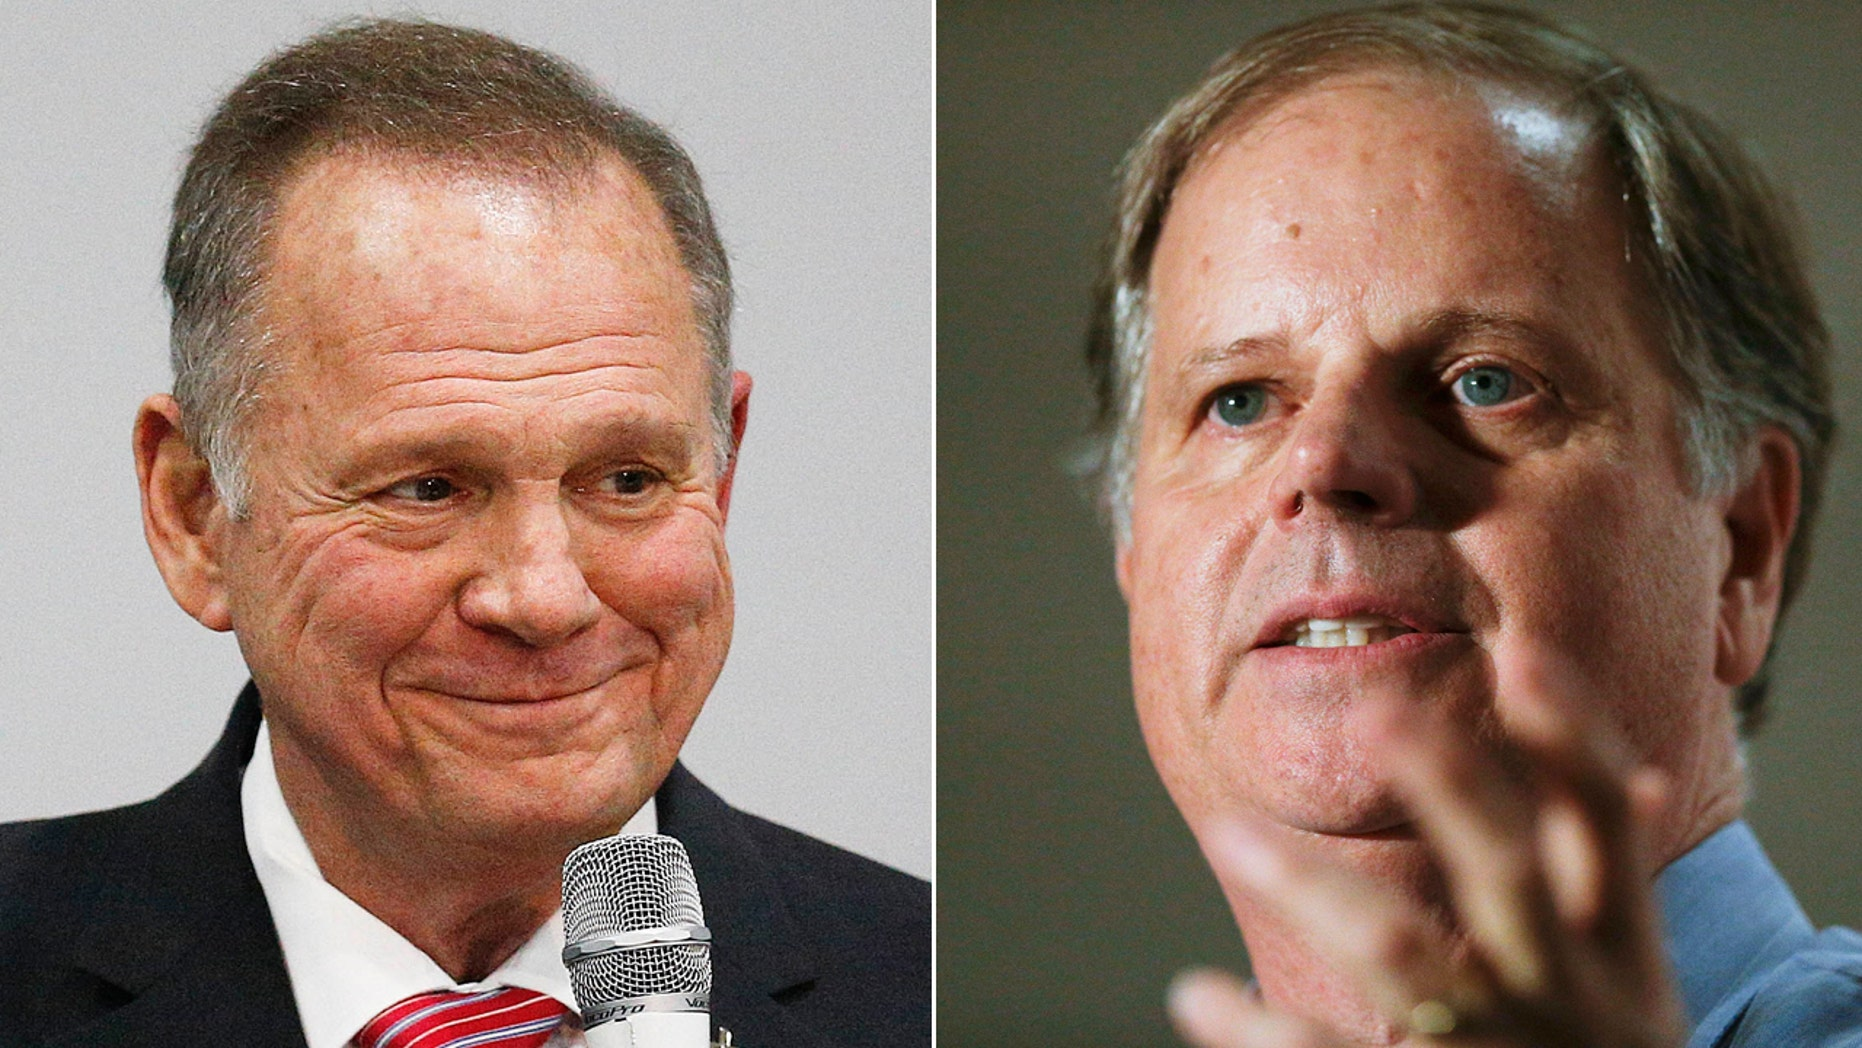 Democratic operatives, backed by a liberal billionaire, created thousands of fake Russian accounts to give an impression the Russian government is supporting Alabama Republican Roy Moore (left) in last year's election against now-Sen. Doug Jones (right).